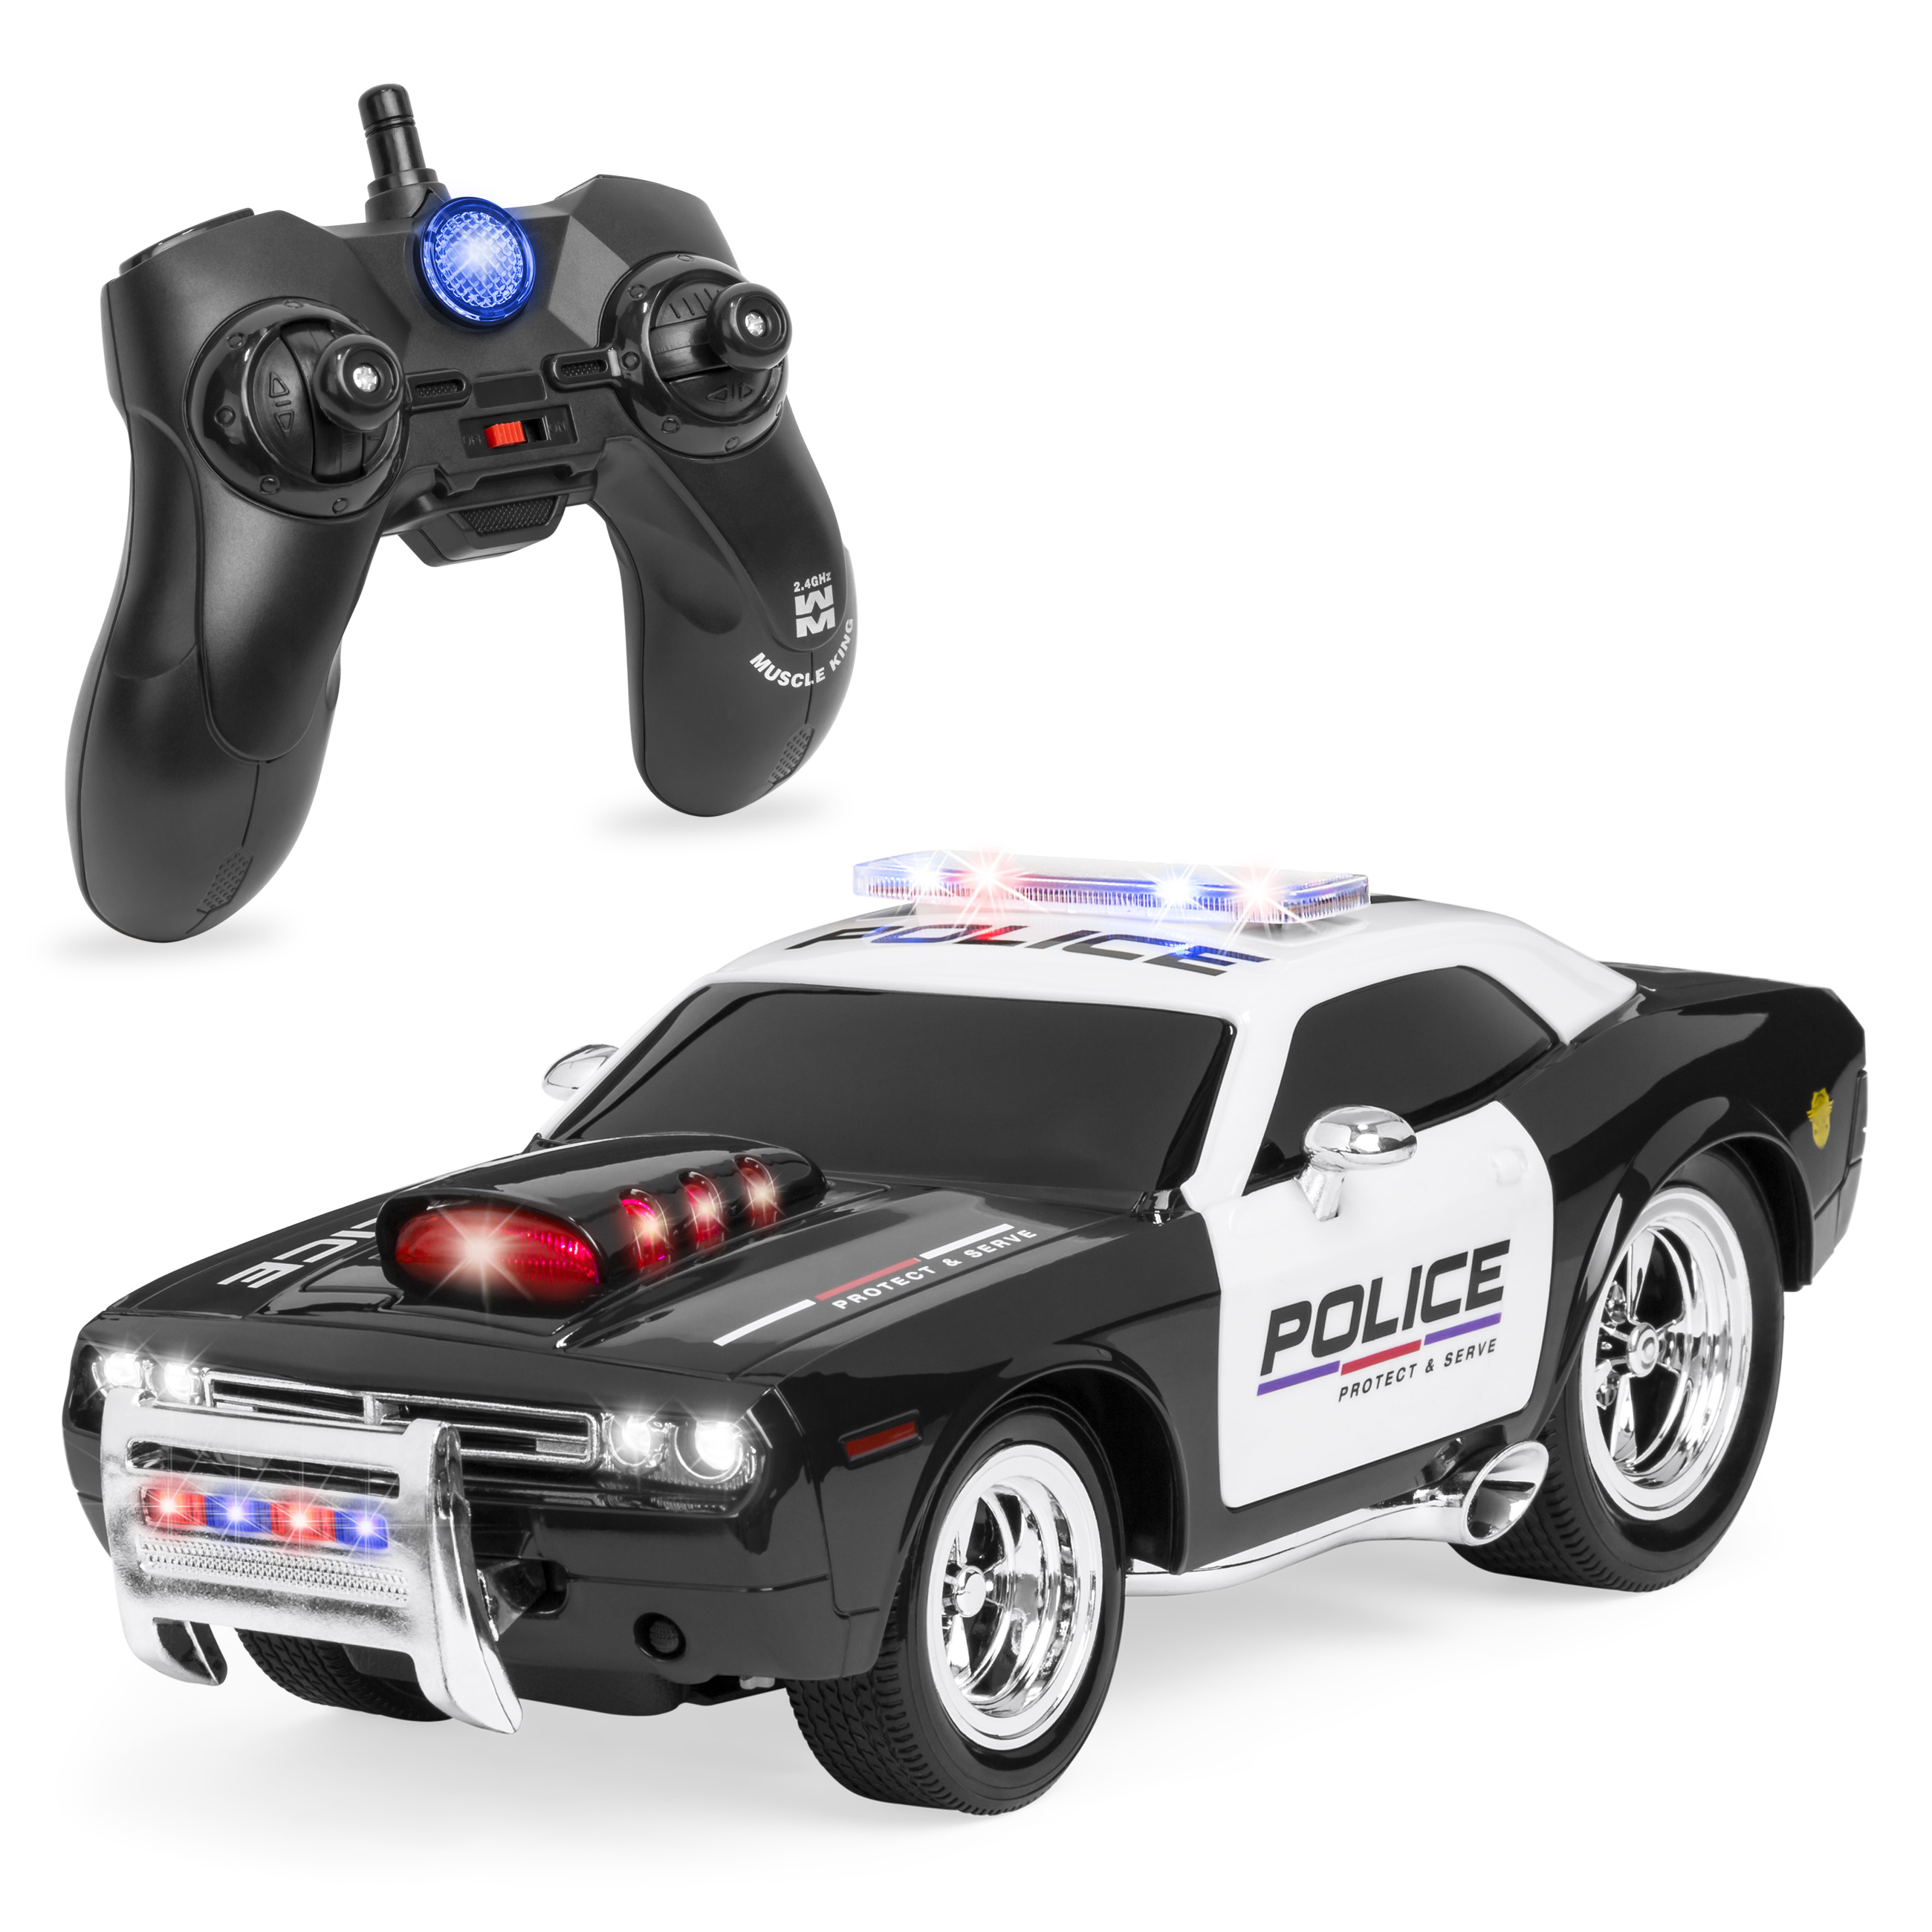 Best Choice Products 1/14 Scale 2.4G 6-Channel Remote Control RC Police Car w/ Lights and Sounds - Black/White